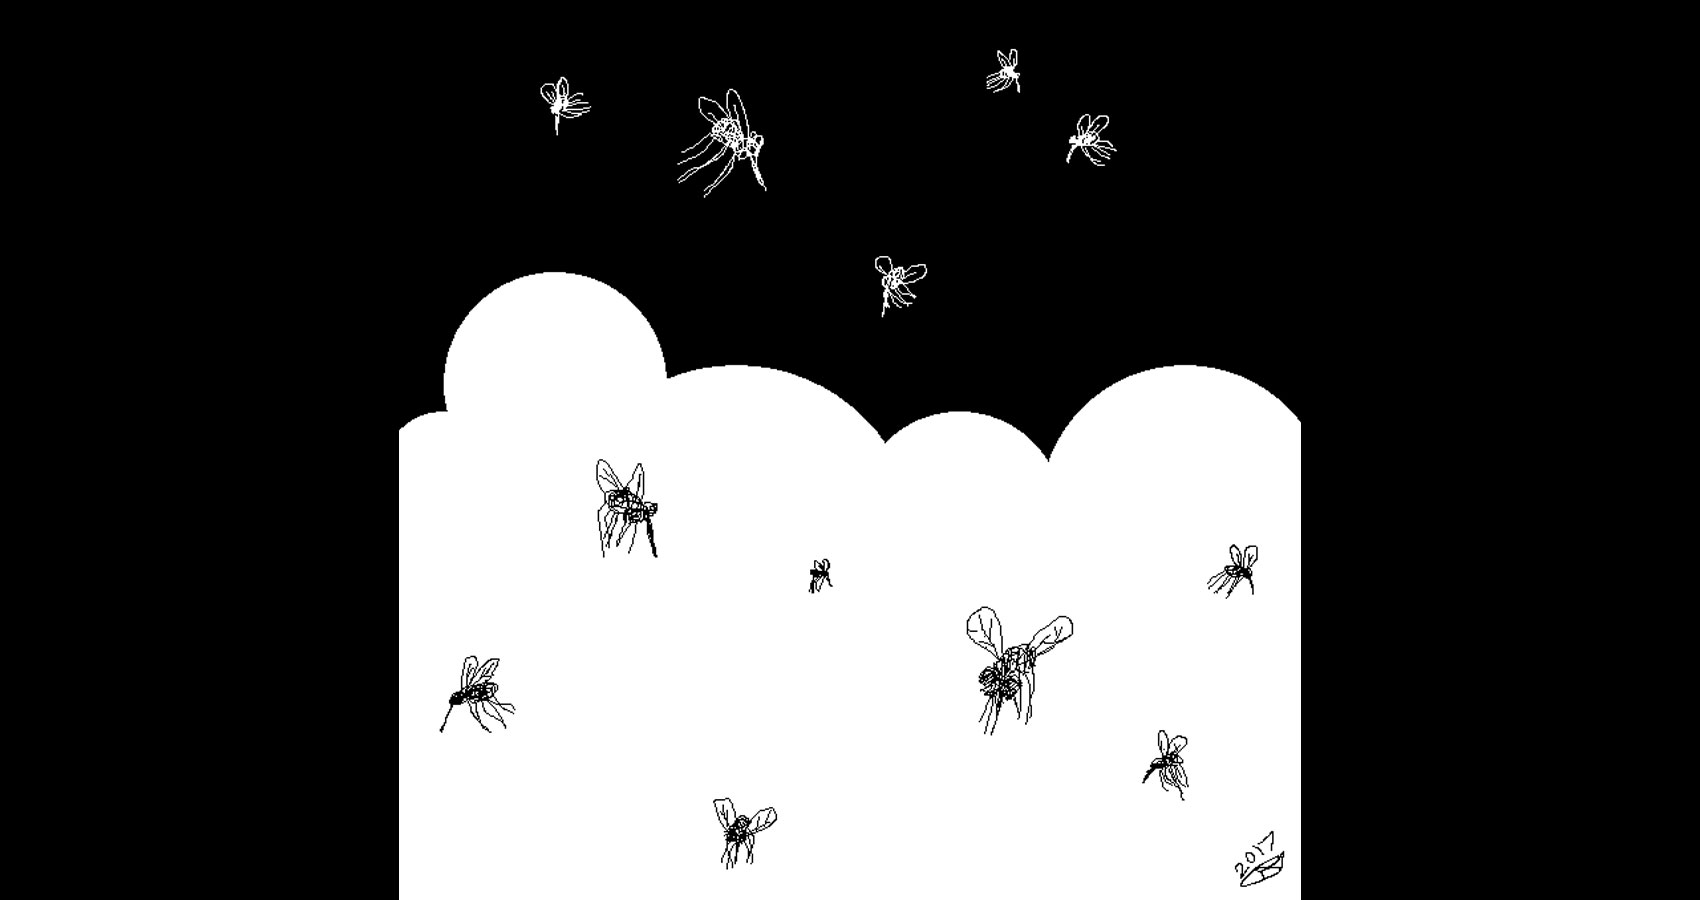 Snow and Mosquitos by Robyn MacKinnon at Spillwords.com